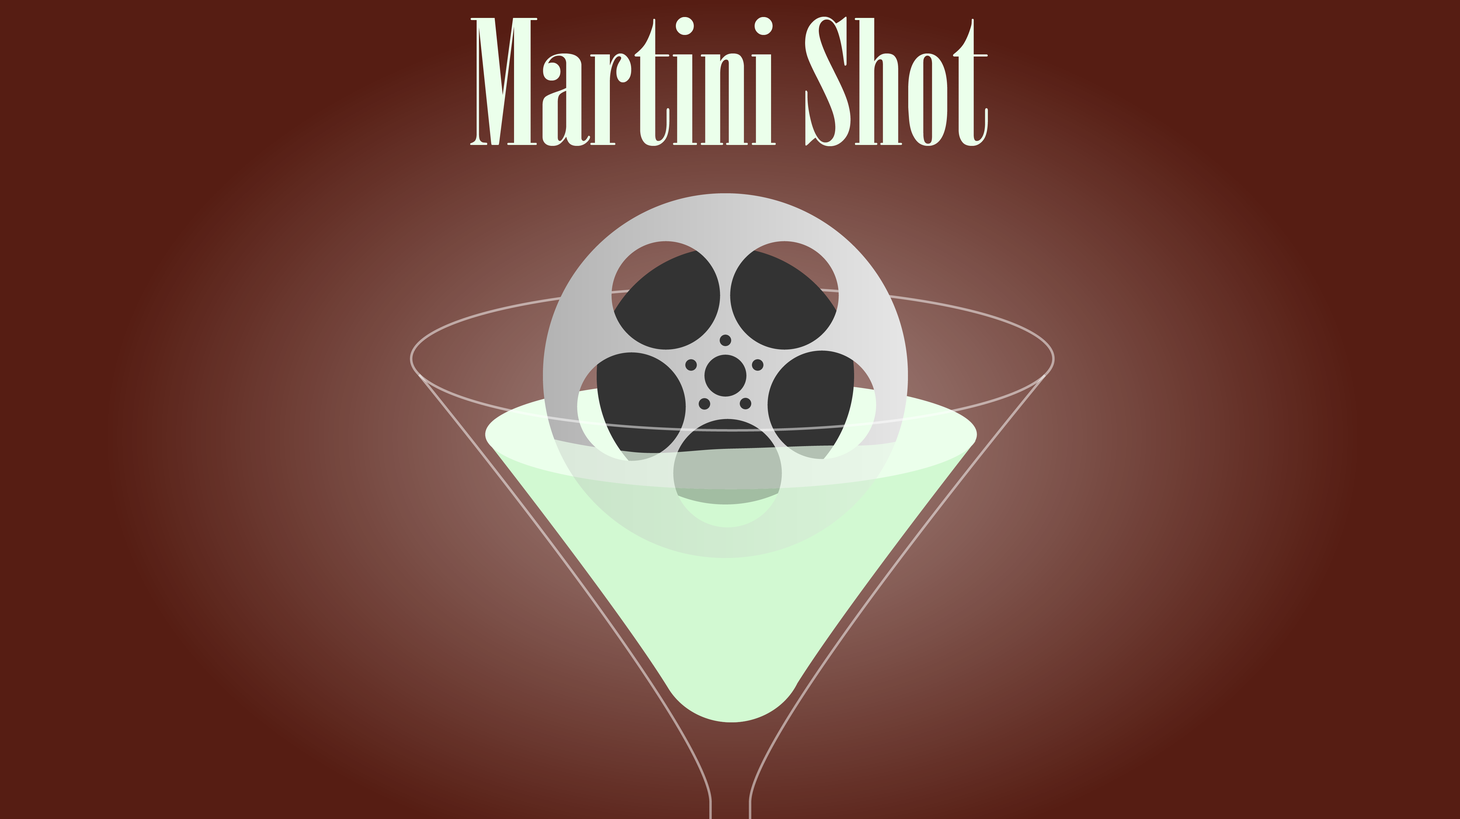 This is Rob Long and on today's Martini Shot, writers are firing their agents, even agents that they like. An agent said to me, some of my clients have cried on the phone while firing me. I've never felt so loved, and also fired.